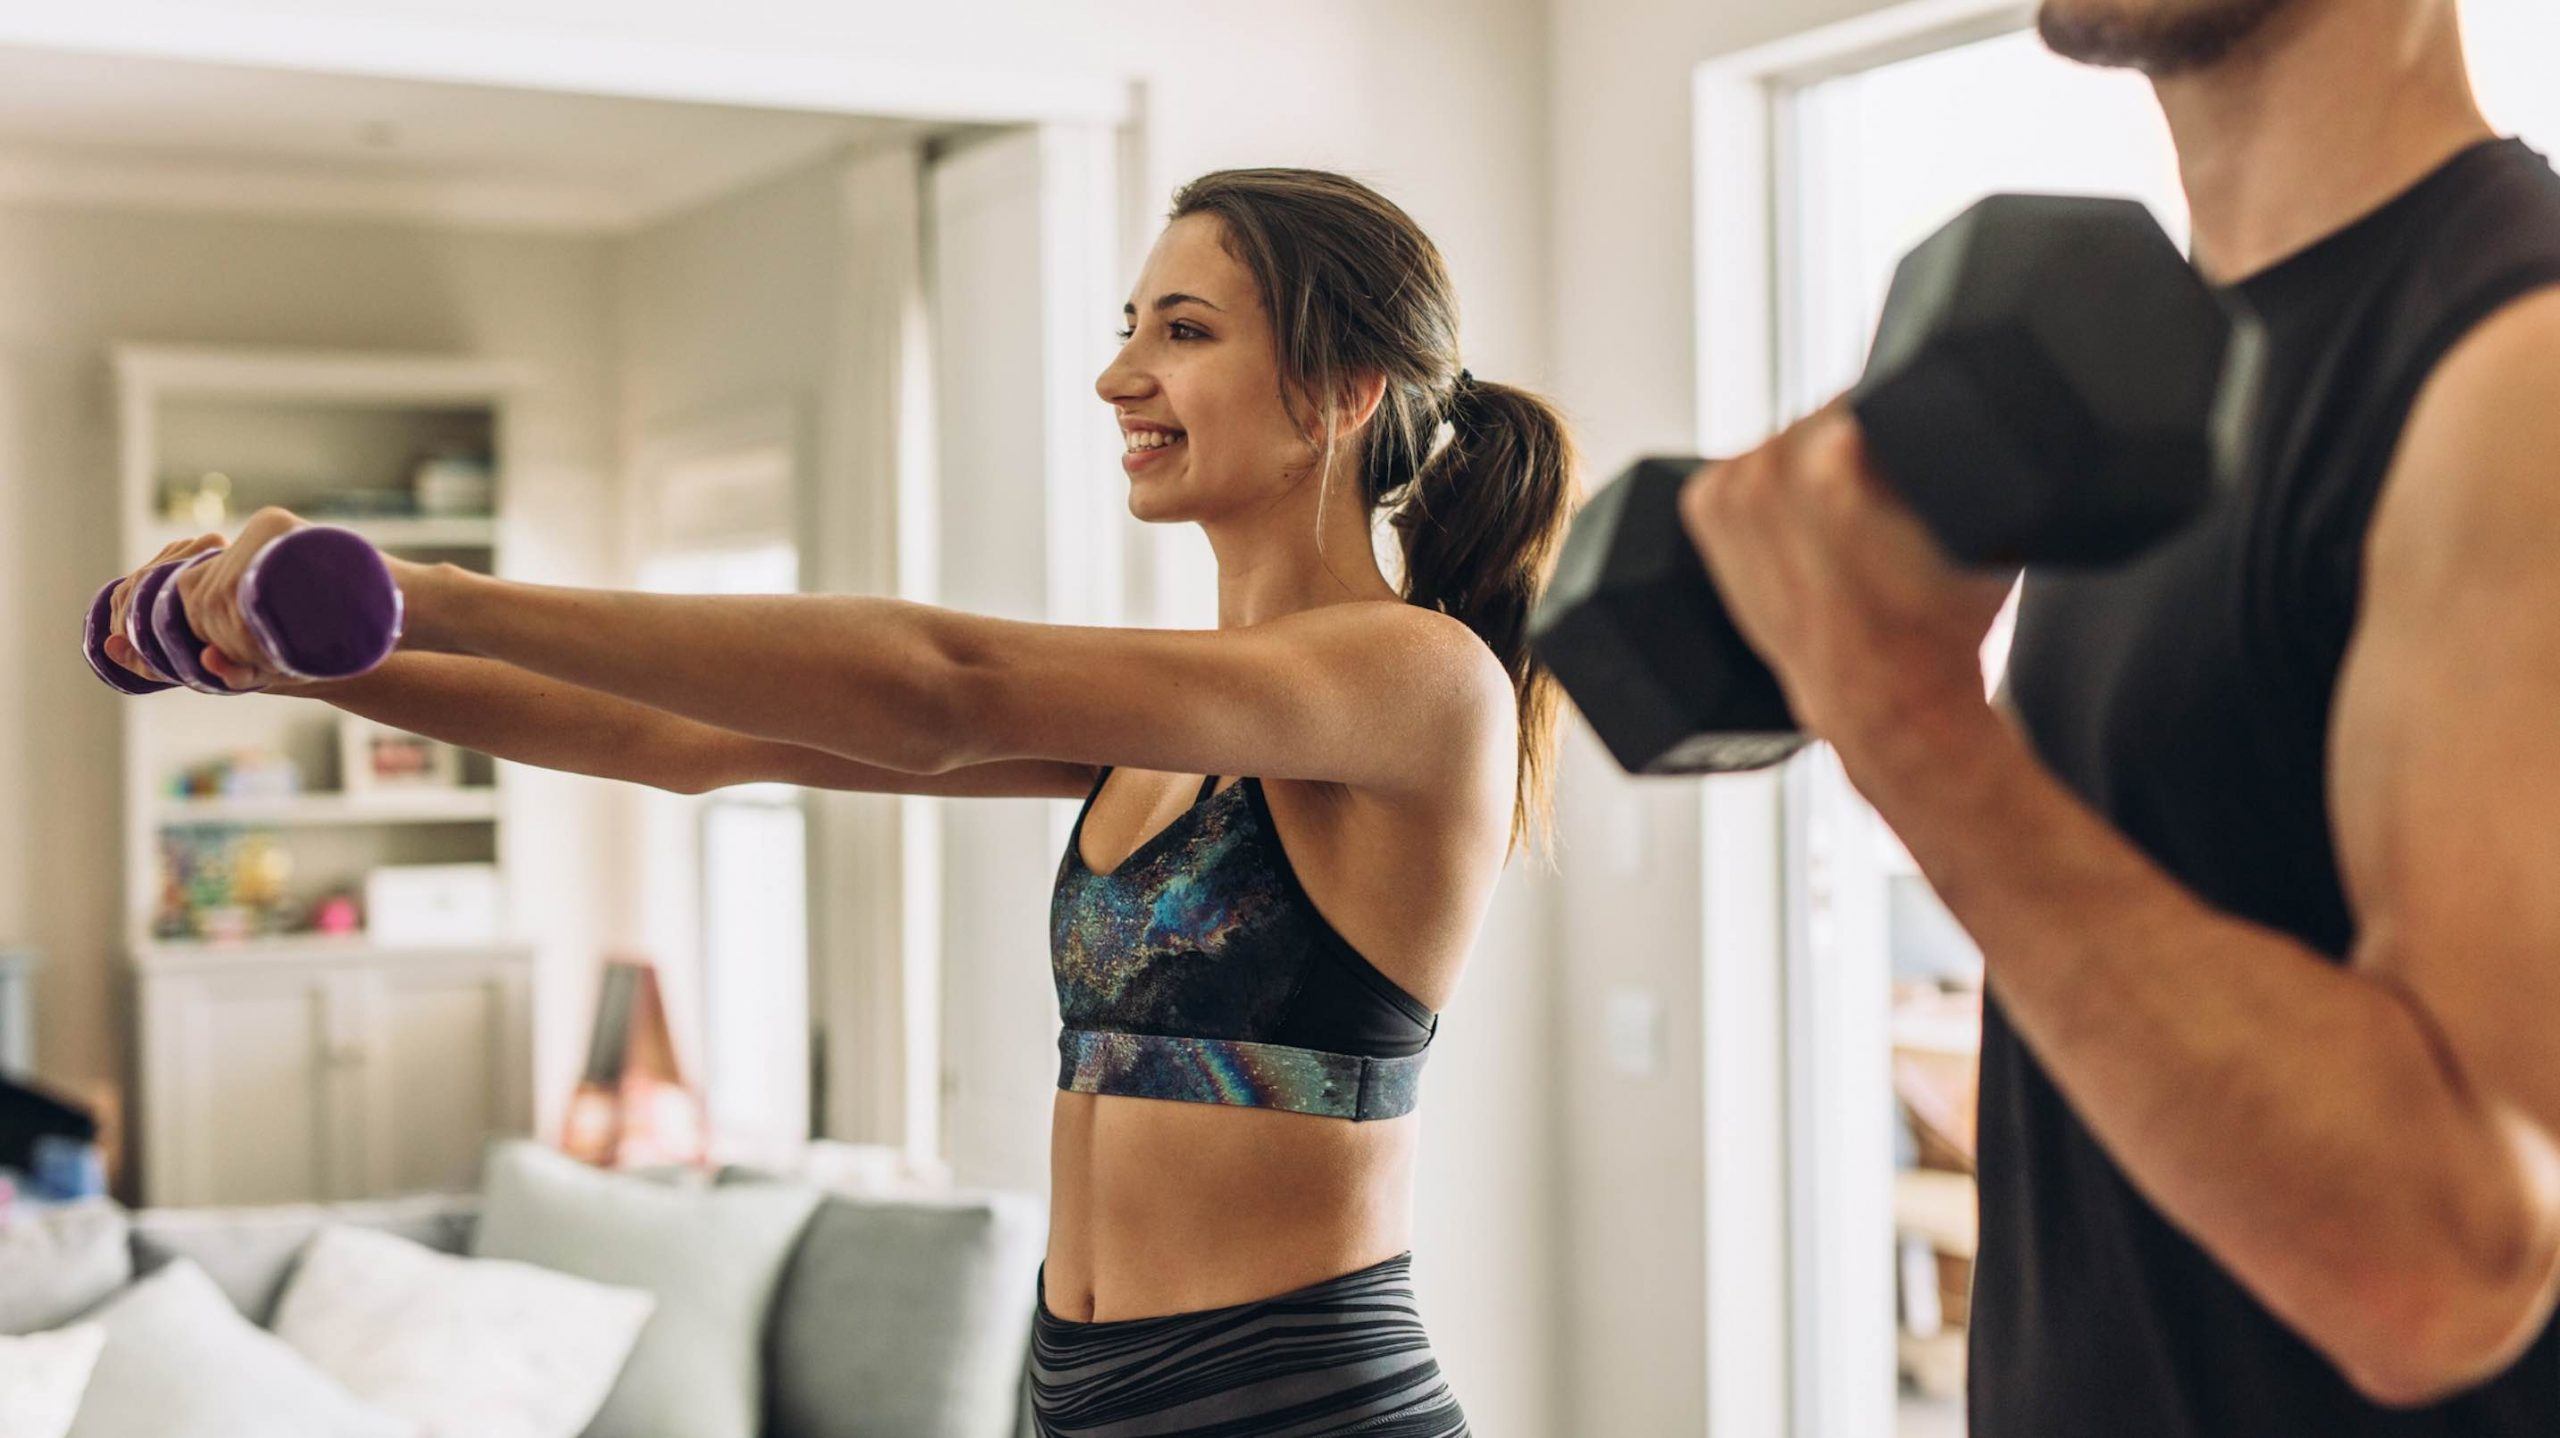 4 High-Intensity Home Workout Apps To Get You Back In Shape Fast